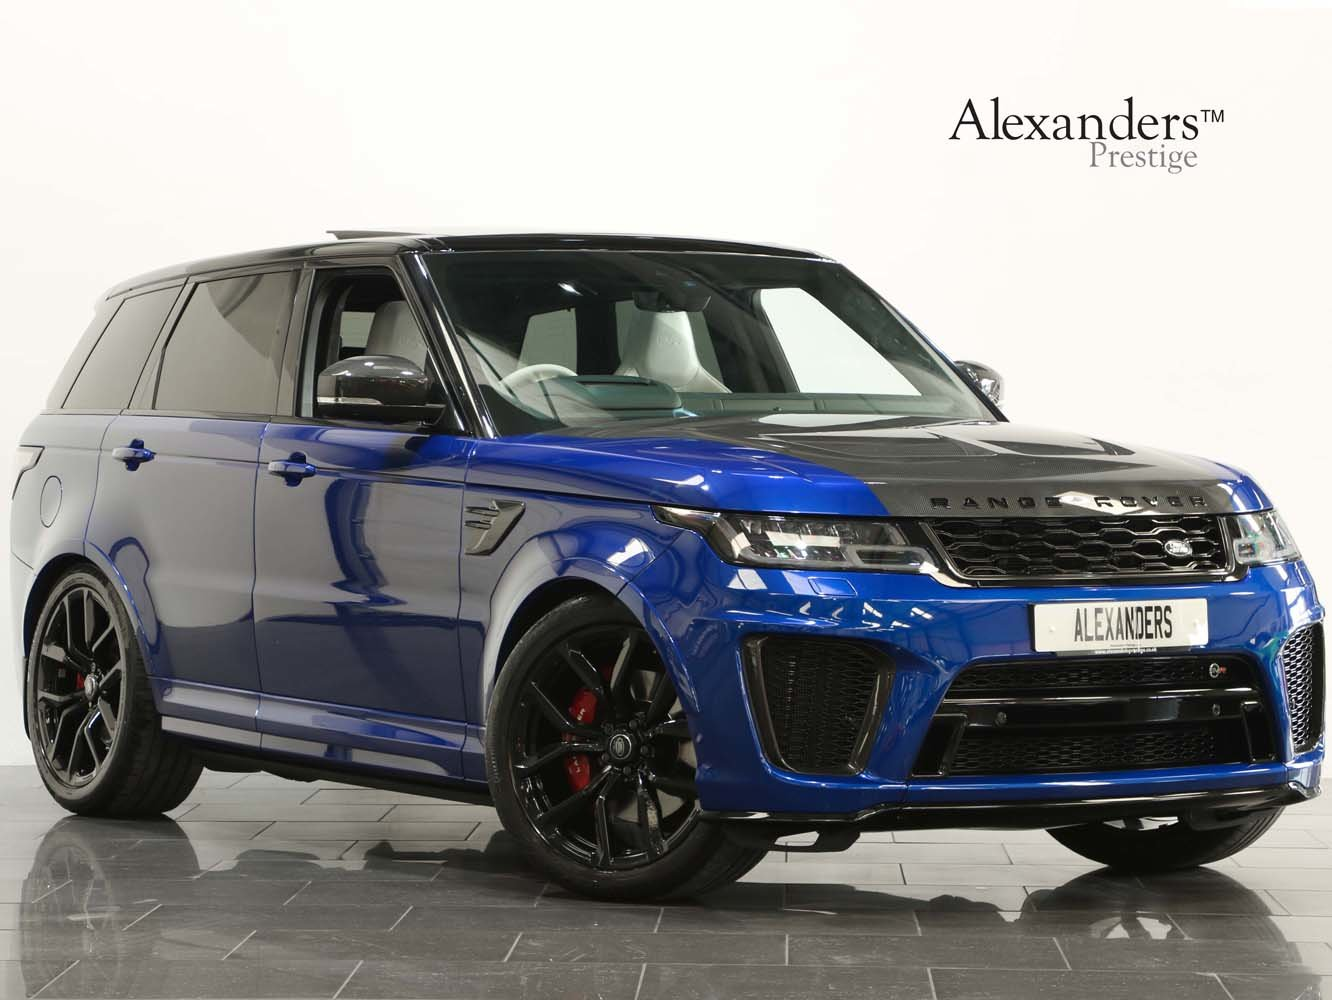 2019 19 69 RANGE ROVER SPORT 5.0 V8 SUPERCHARGED SVR AUTO For Sale (picture 1 of 6)